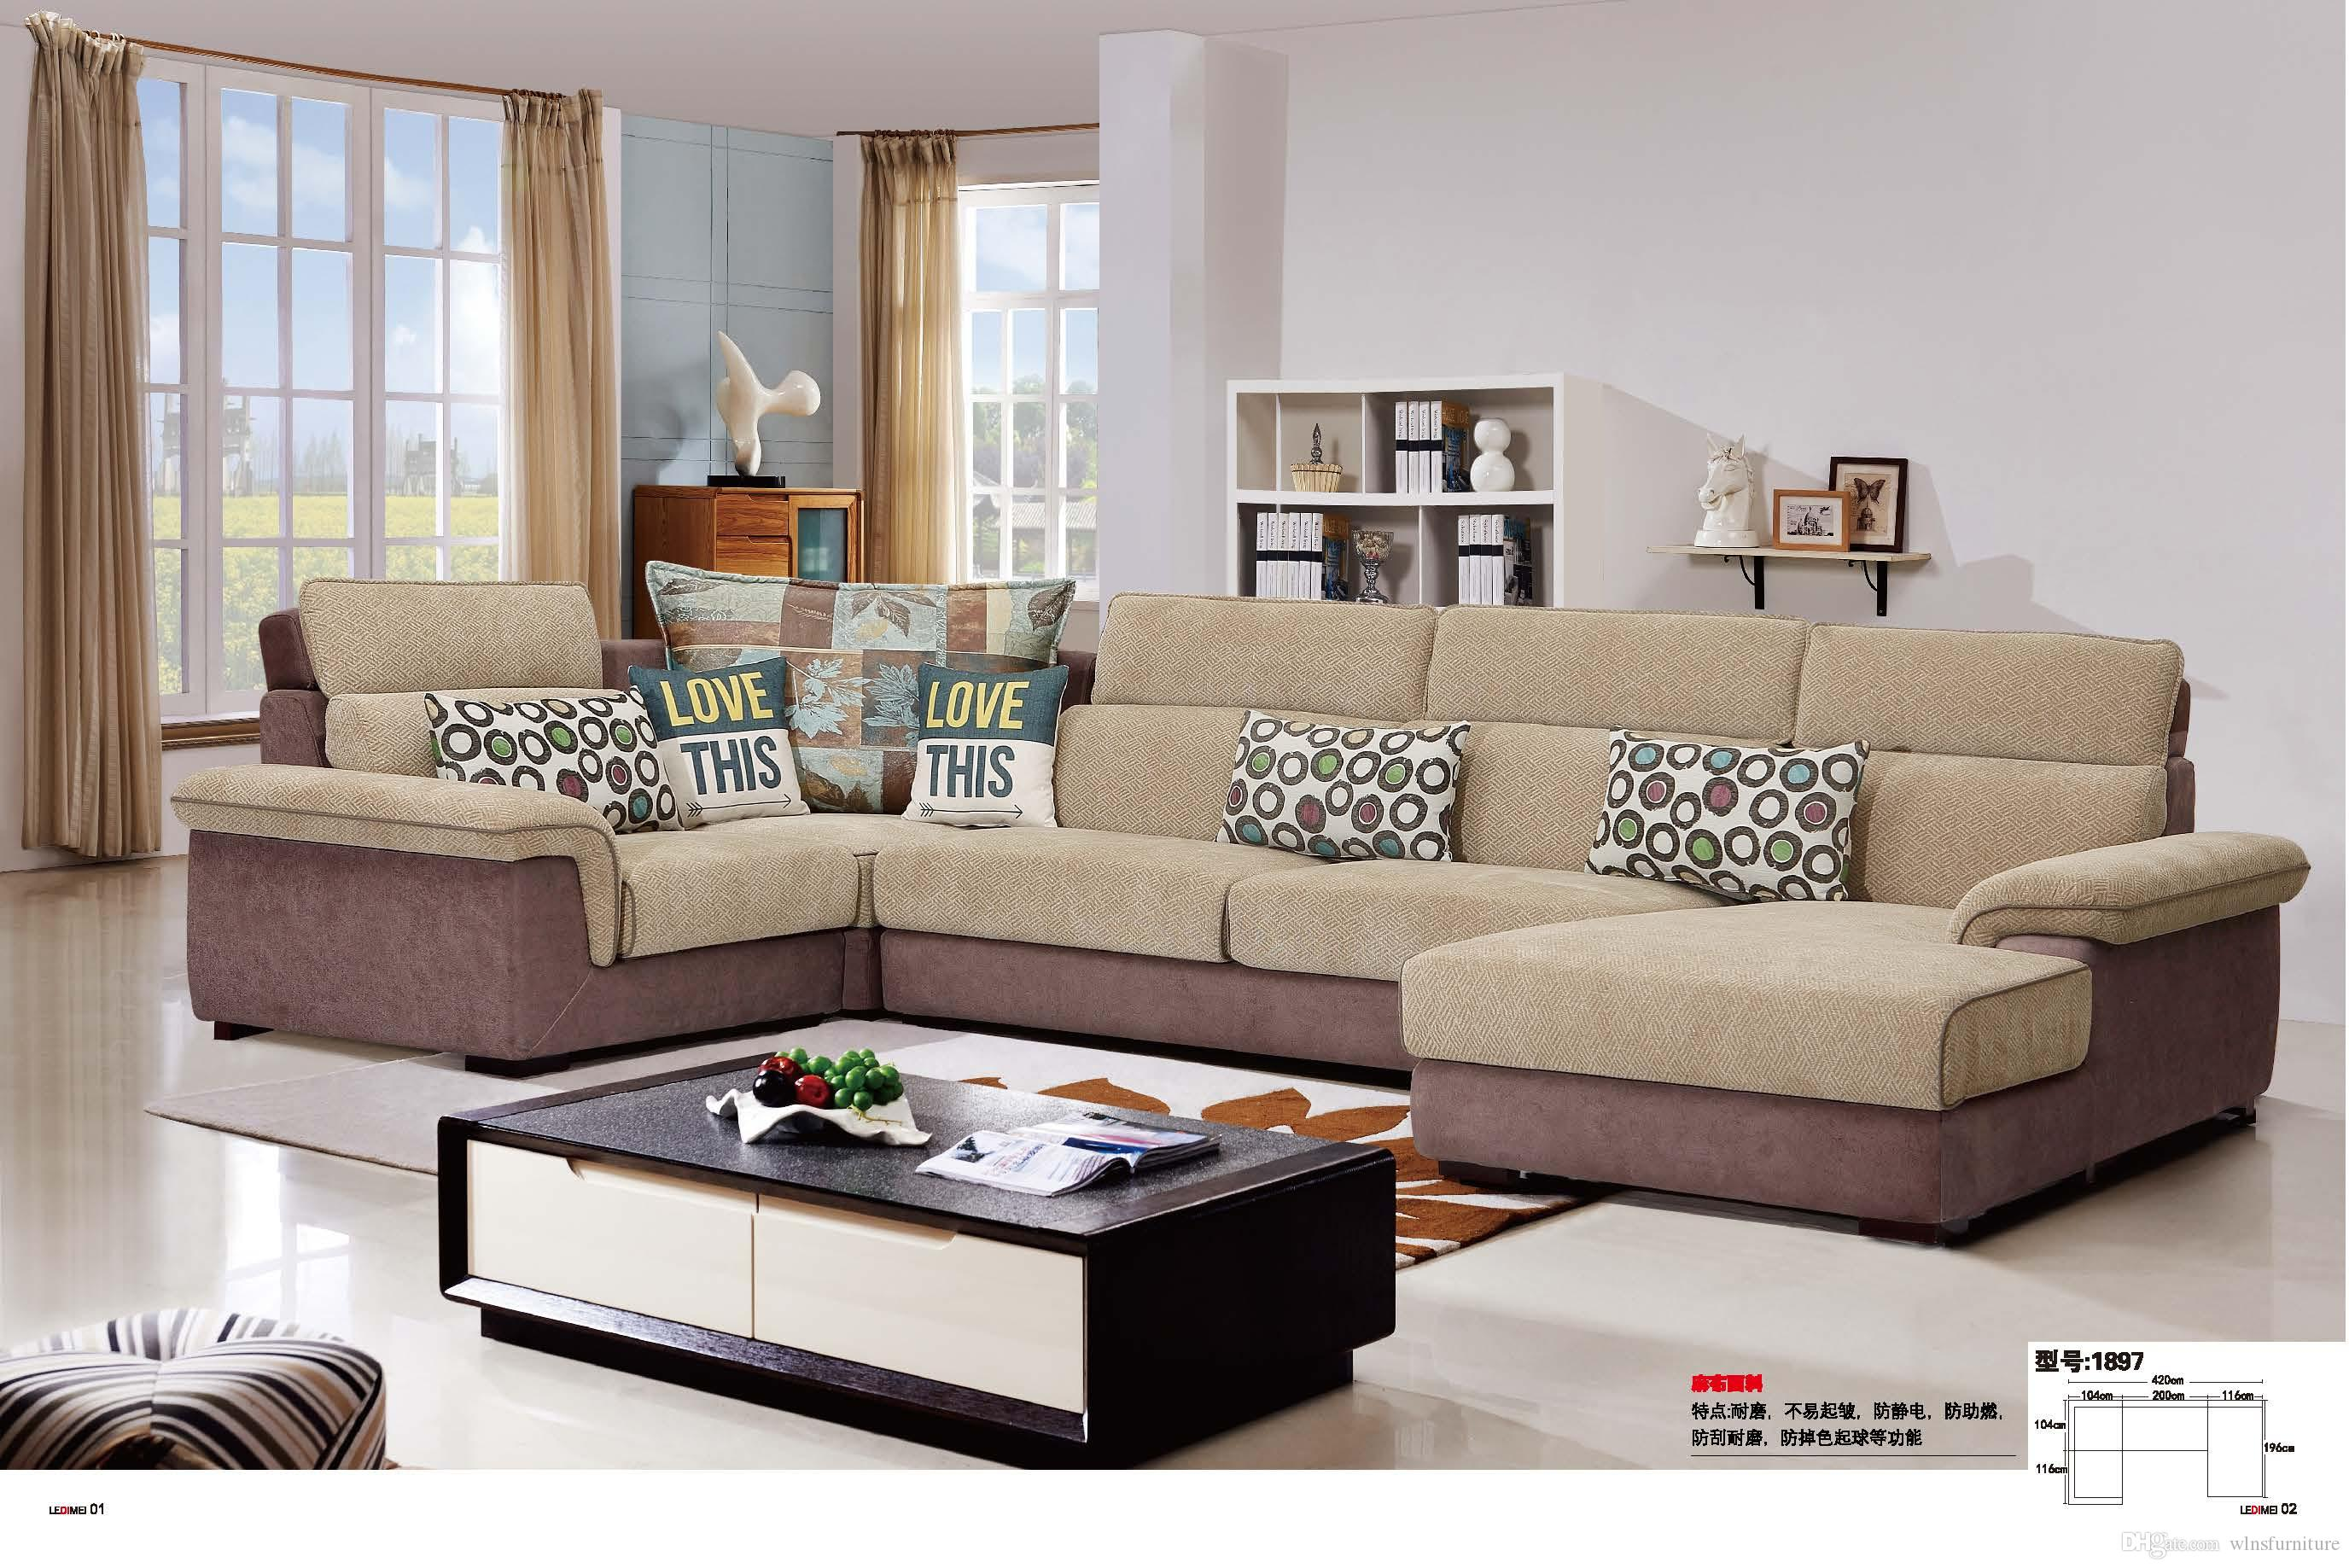 Outstanding 2019 Modern Living Room Fabric Sofa U Shape Sectional Anti Bacterial Fabric Comfortable Soft Fabric Sofa Set From Wlnsfurniture 899 5 Dhgate Com Pabps2019 Chair Design Images Pabps2019Com